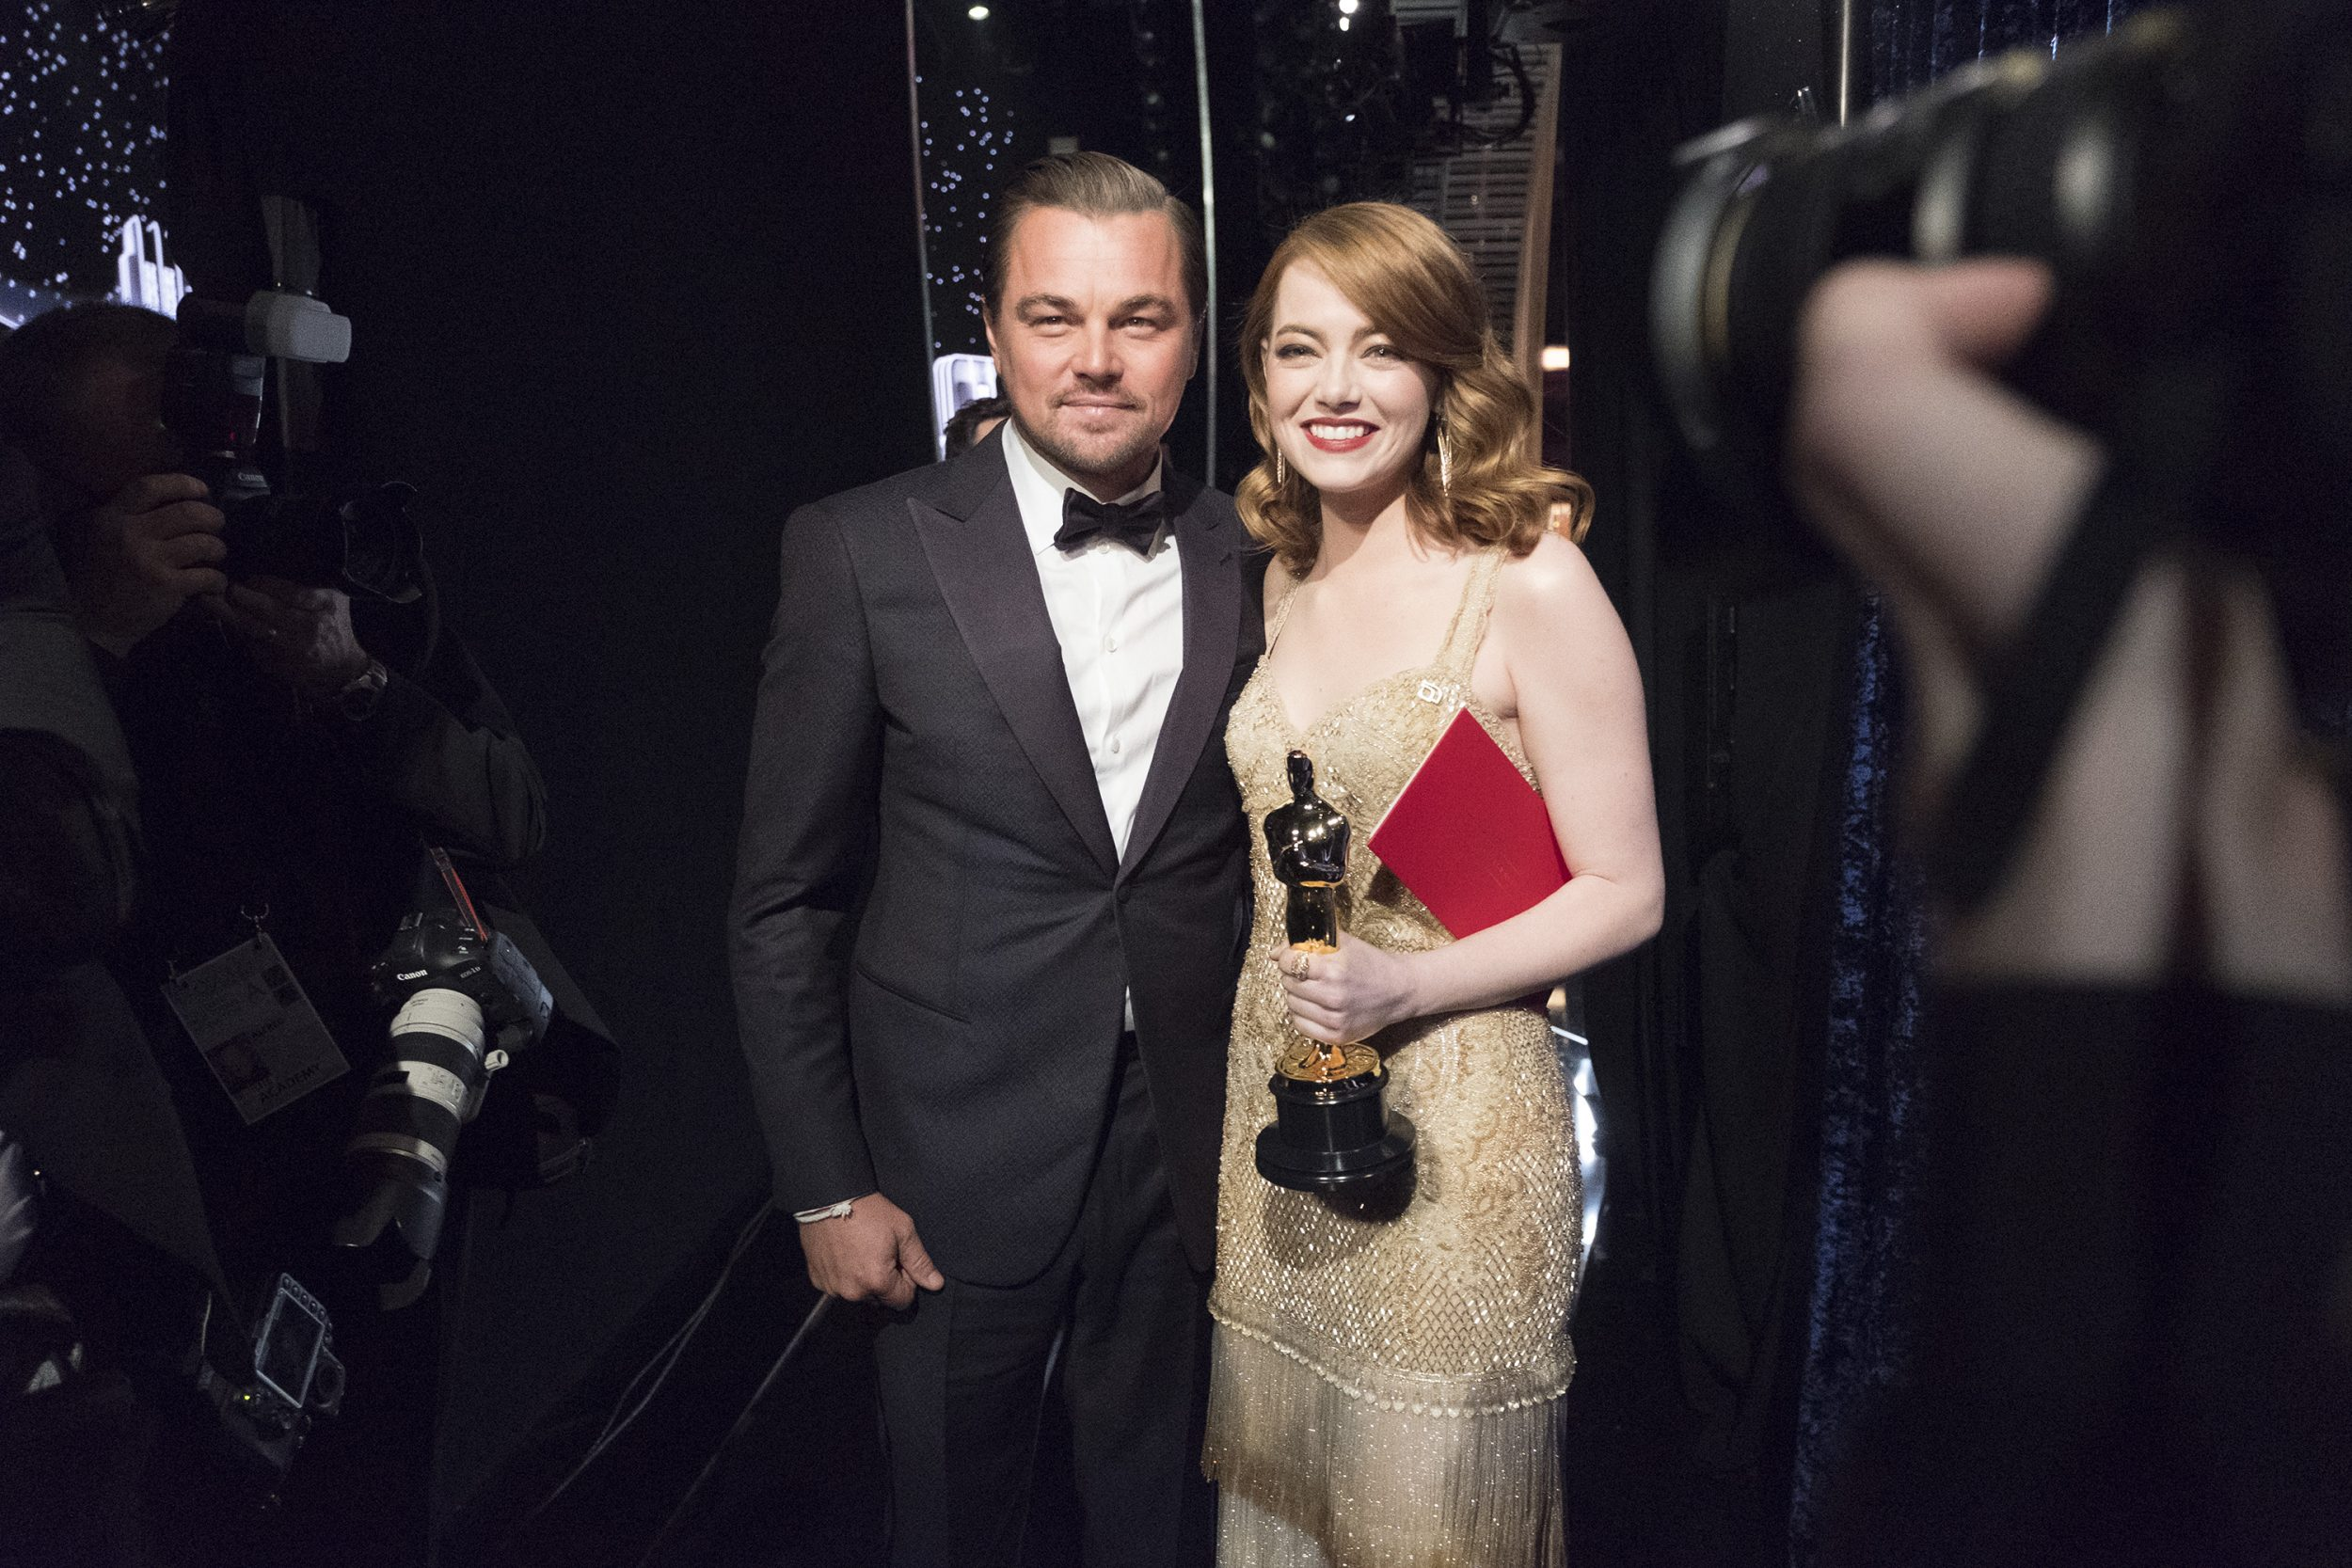 THE OSCARS(r) - The 89th Oscars(r)  broadcasts live on Oscar(r) SUNDAY, FEBRUARY 26, 2017, on the ABC Television Network. (ABC/Adam Rose) LEONARDO DICAPRIO, EMMA STONE